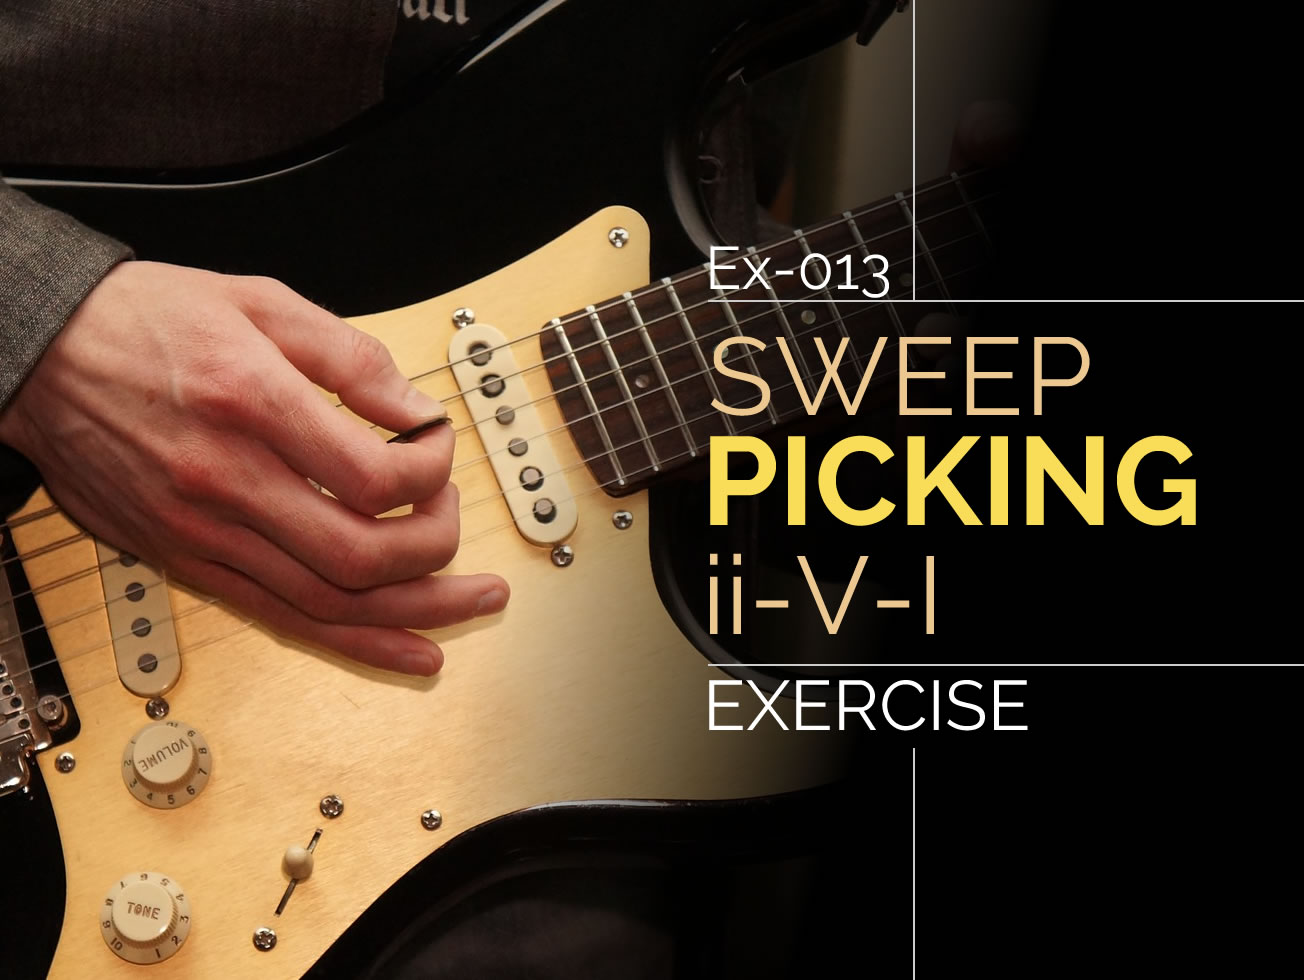 Soloing Over Chord Progressions Guitar Lesson World Besides Bass String Names On Ukulele Diagram Ex 013 Sweep Picking Ii V I